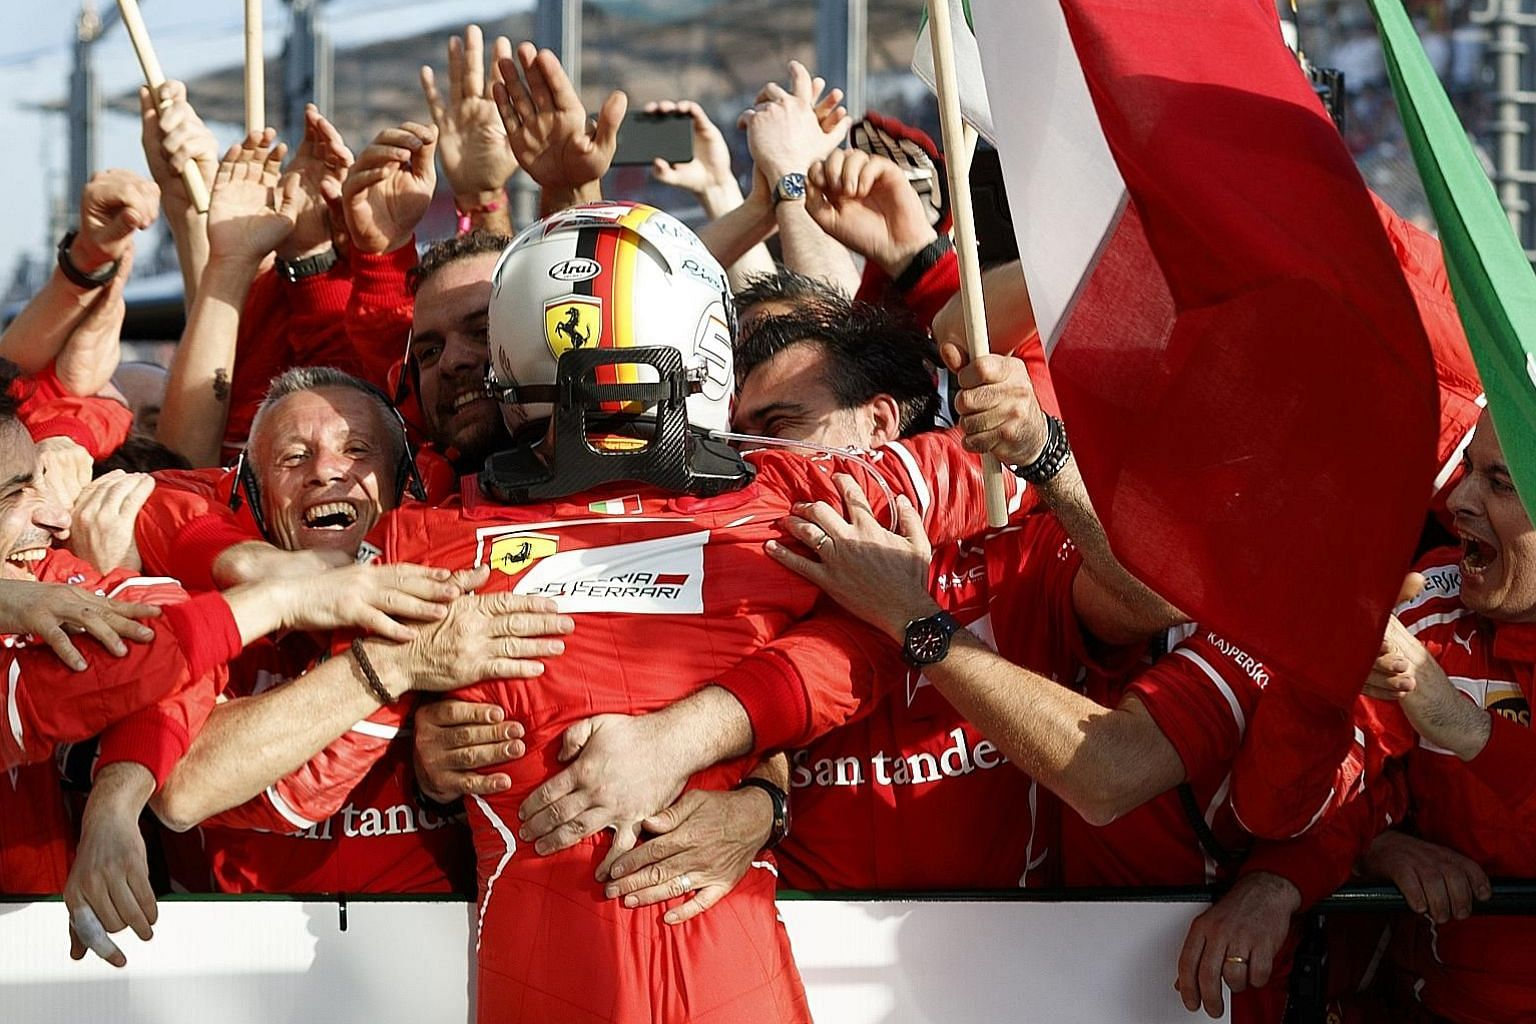 Ferrari driver Sebastian Vettel being mobbed by his team members after winning the Formula One season-opening Australian Grand Prix in Melbourne yesterday. The German beat Mercedes rival Lewis Hamilton by almost 10 seconds for his first race win sinc